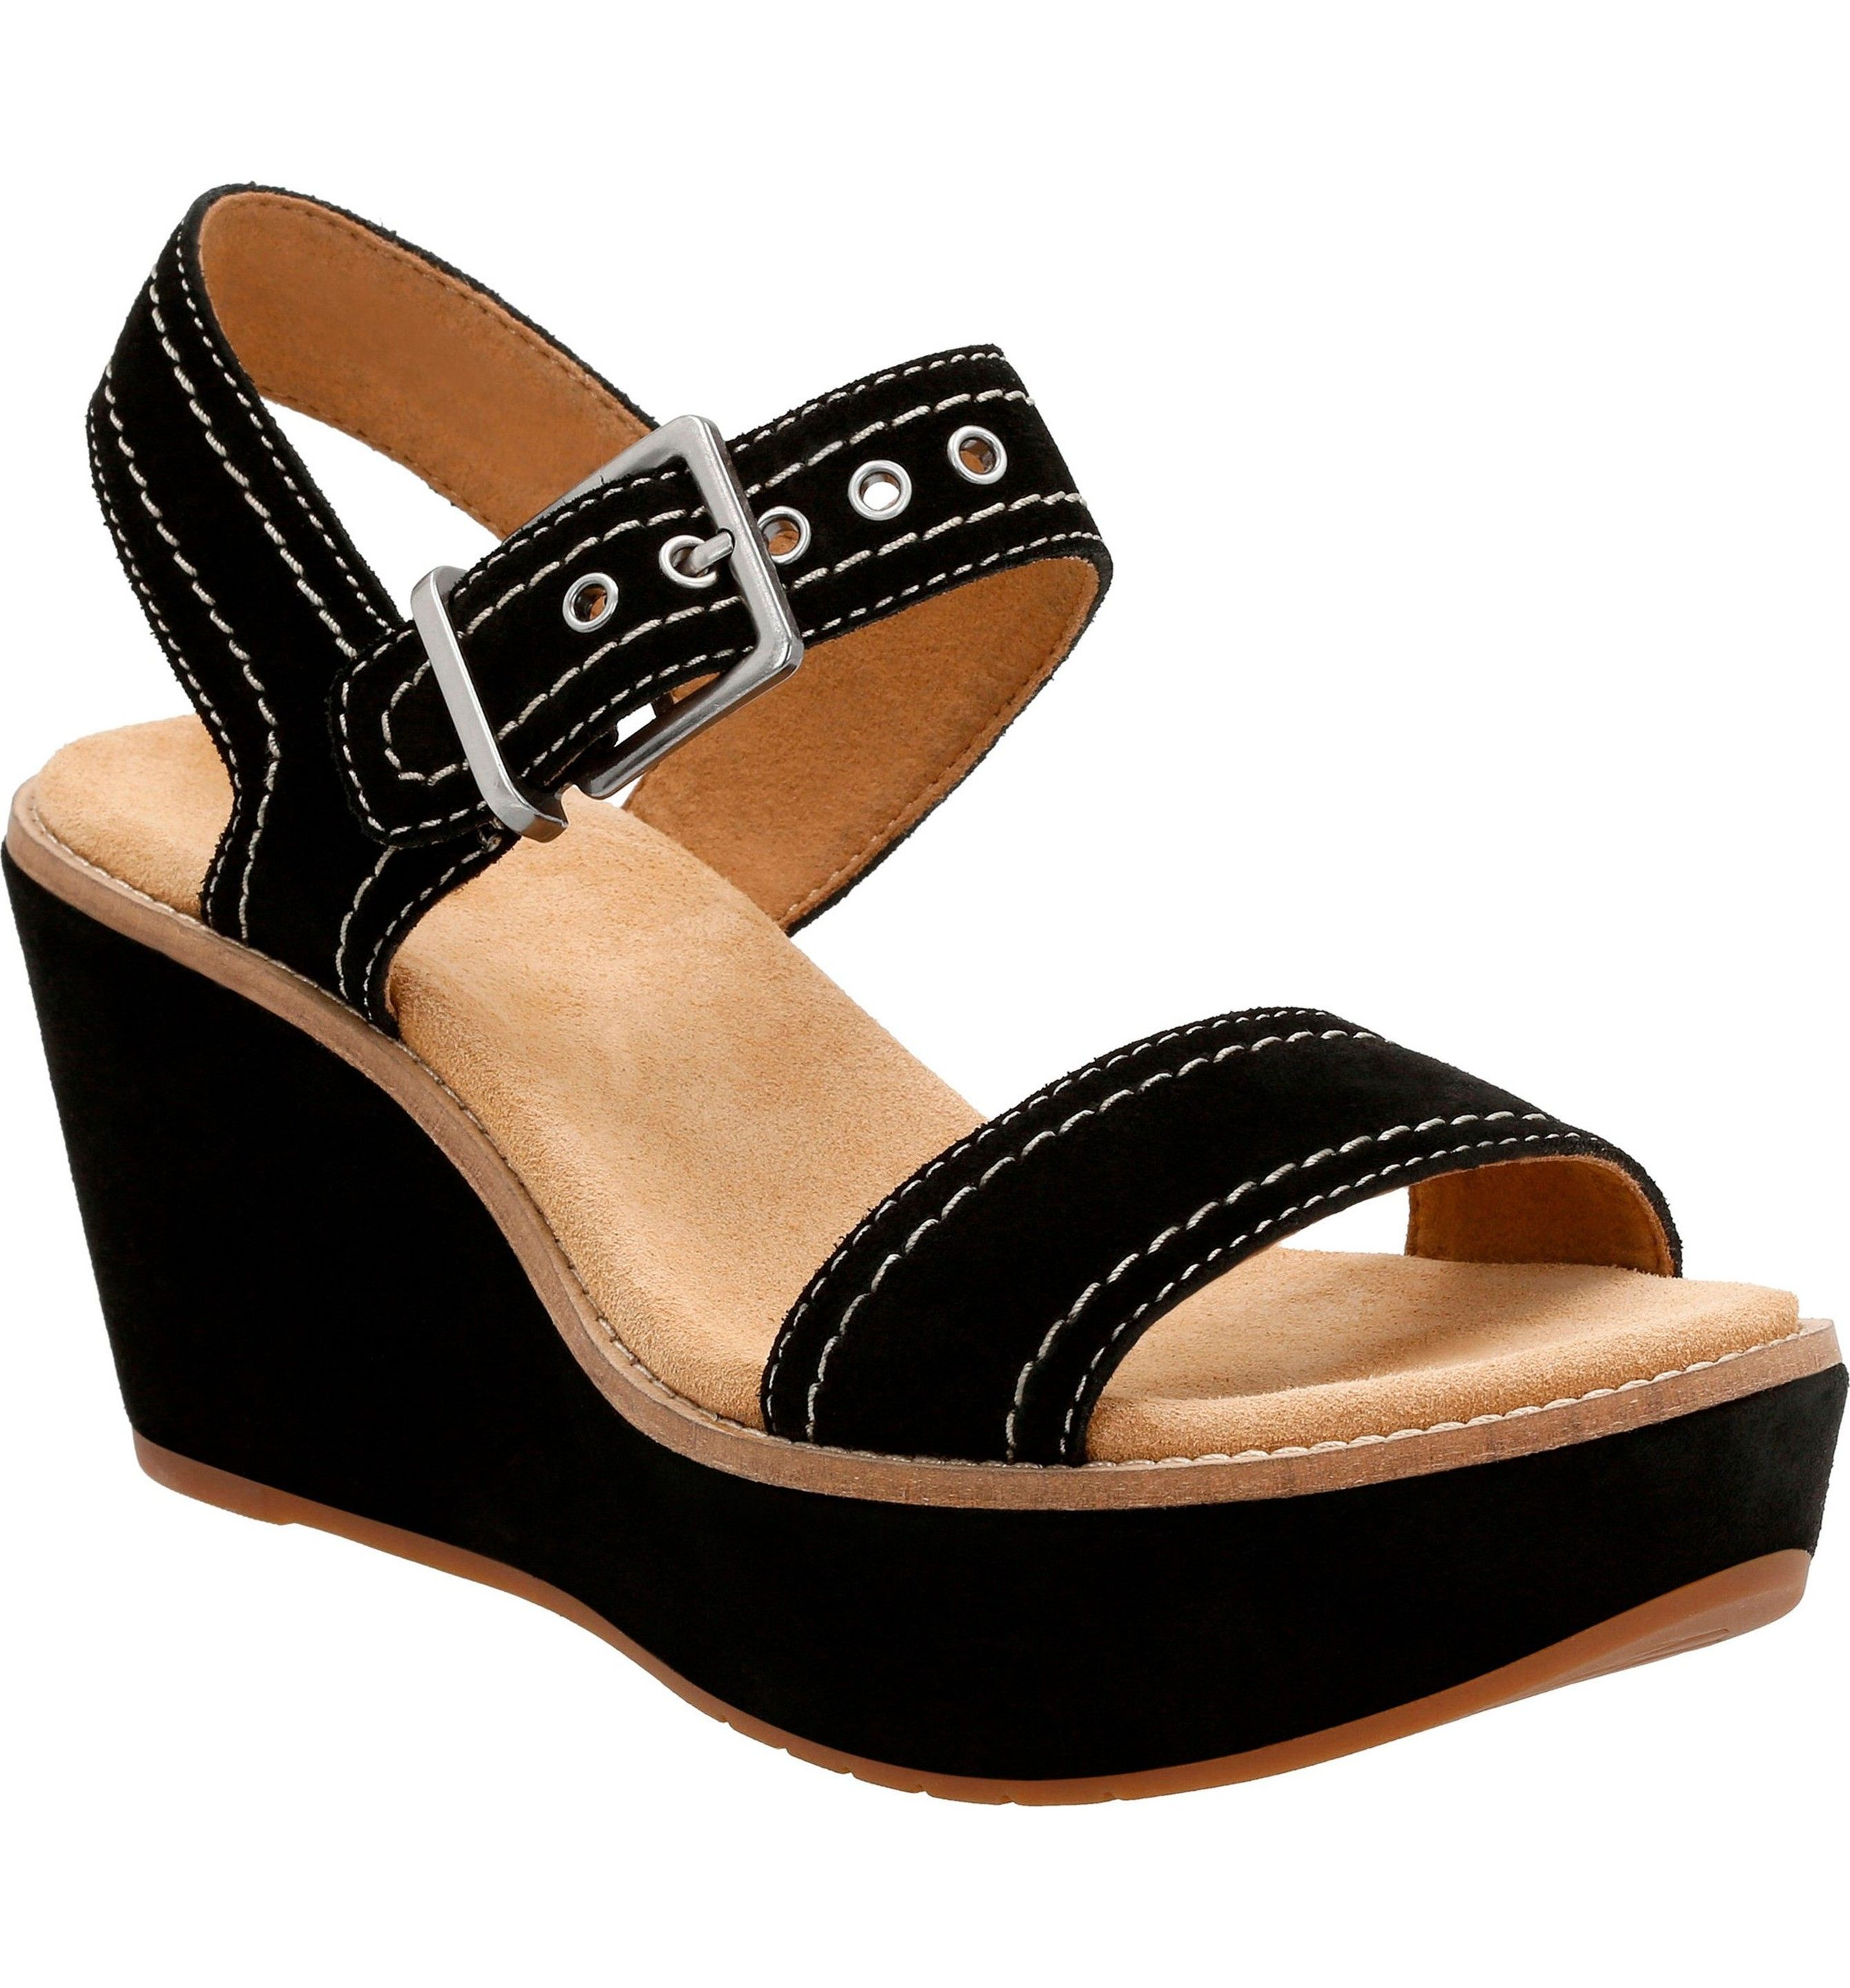 044930ac6436 Main Image - Clarks® Aisley Orchid Wedge Sandal (Women)